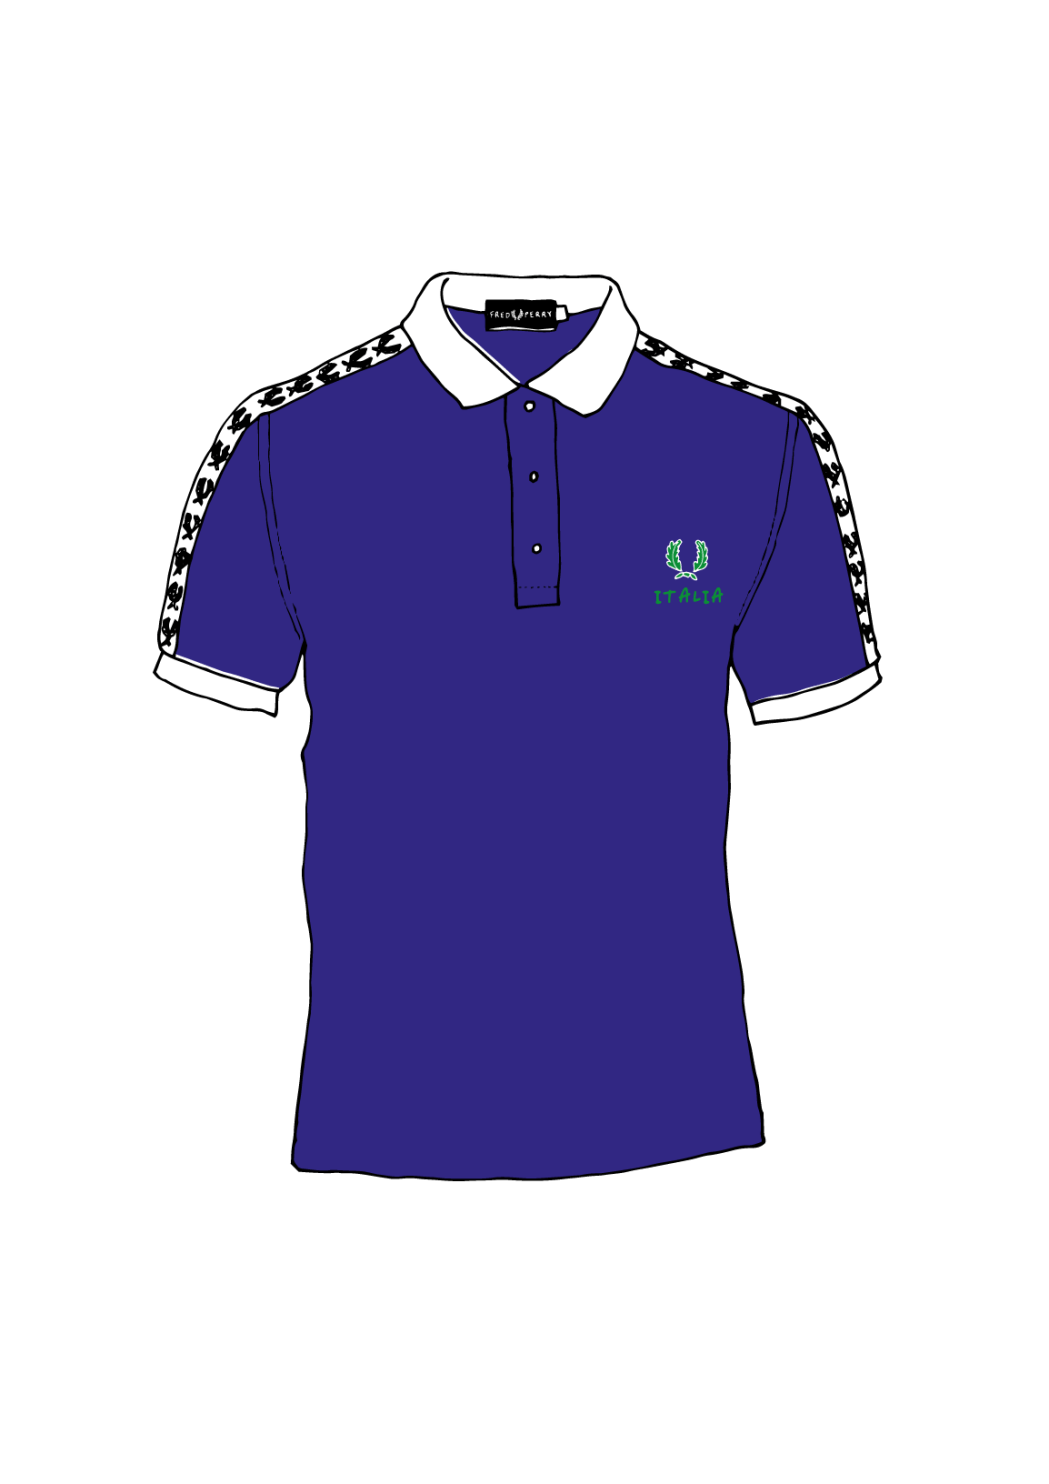 https://i1.wp.com/blog.woodhouseclothing.com/wp-content/uploads/2016/04/Fred-Perry-Country-Shirts-Italia.png?w=1050&ssl=1